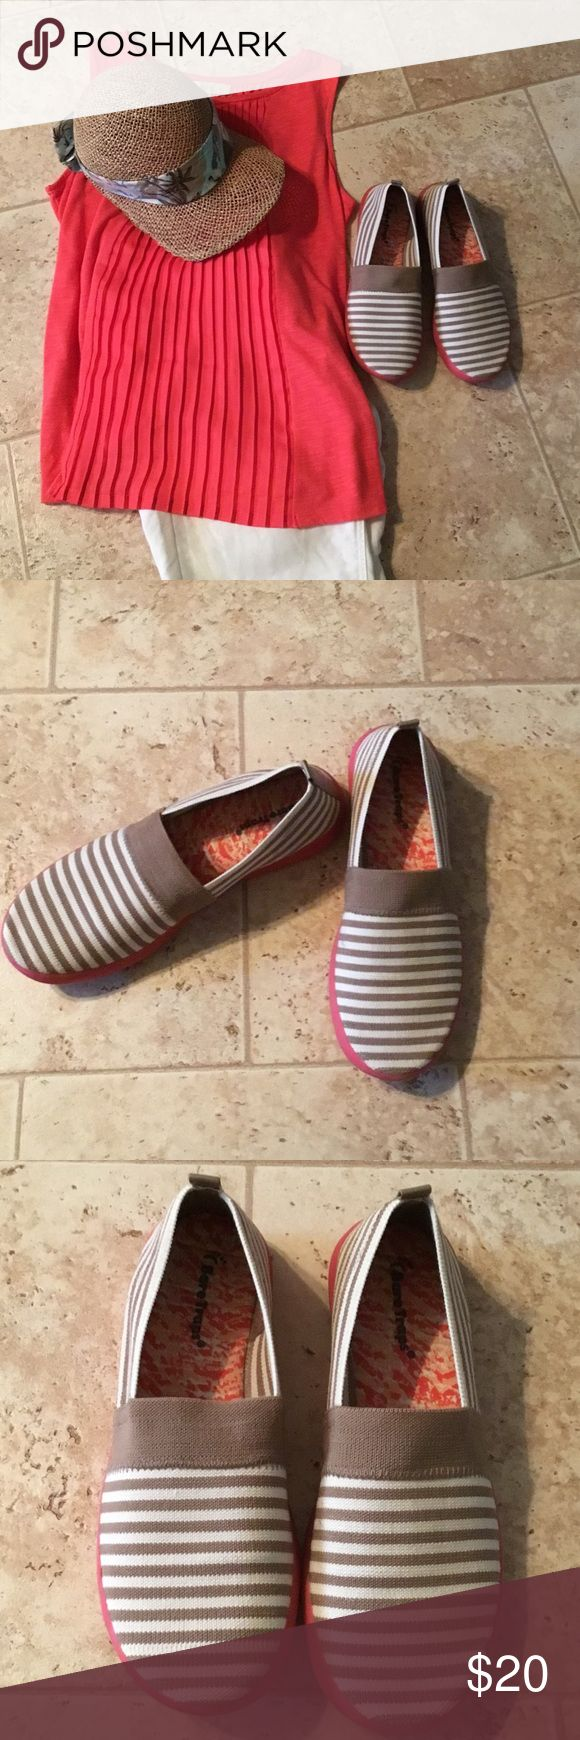 Bare Traps Ladies shoes New Listing❤️❤️❤️❤️Very cute cream and taupe color with coral color on heel.  Excellent condition.  Very comfortable. Very clean inside. Looks new. Bare Traps Shoes Slippers